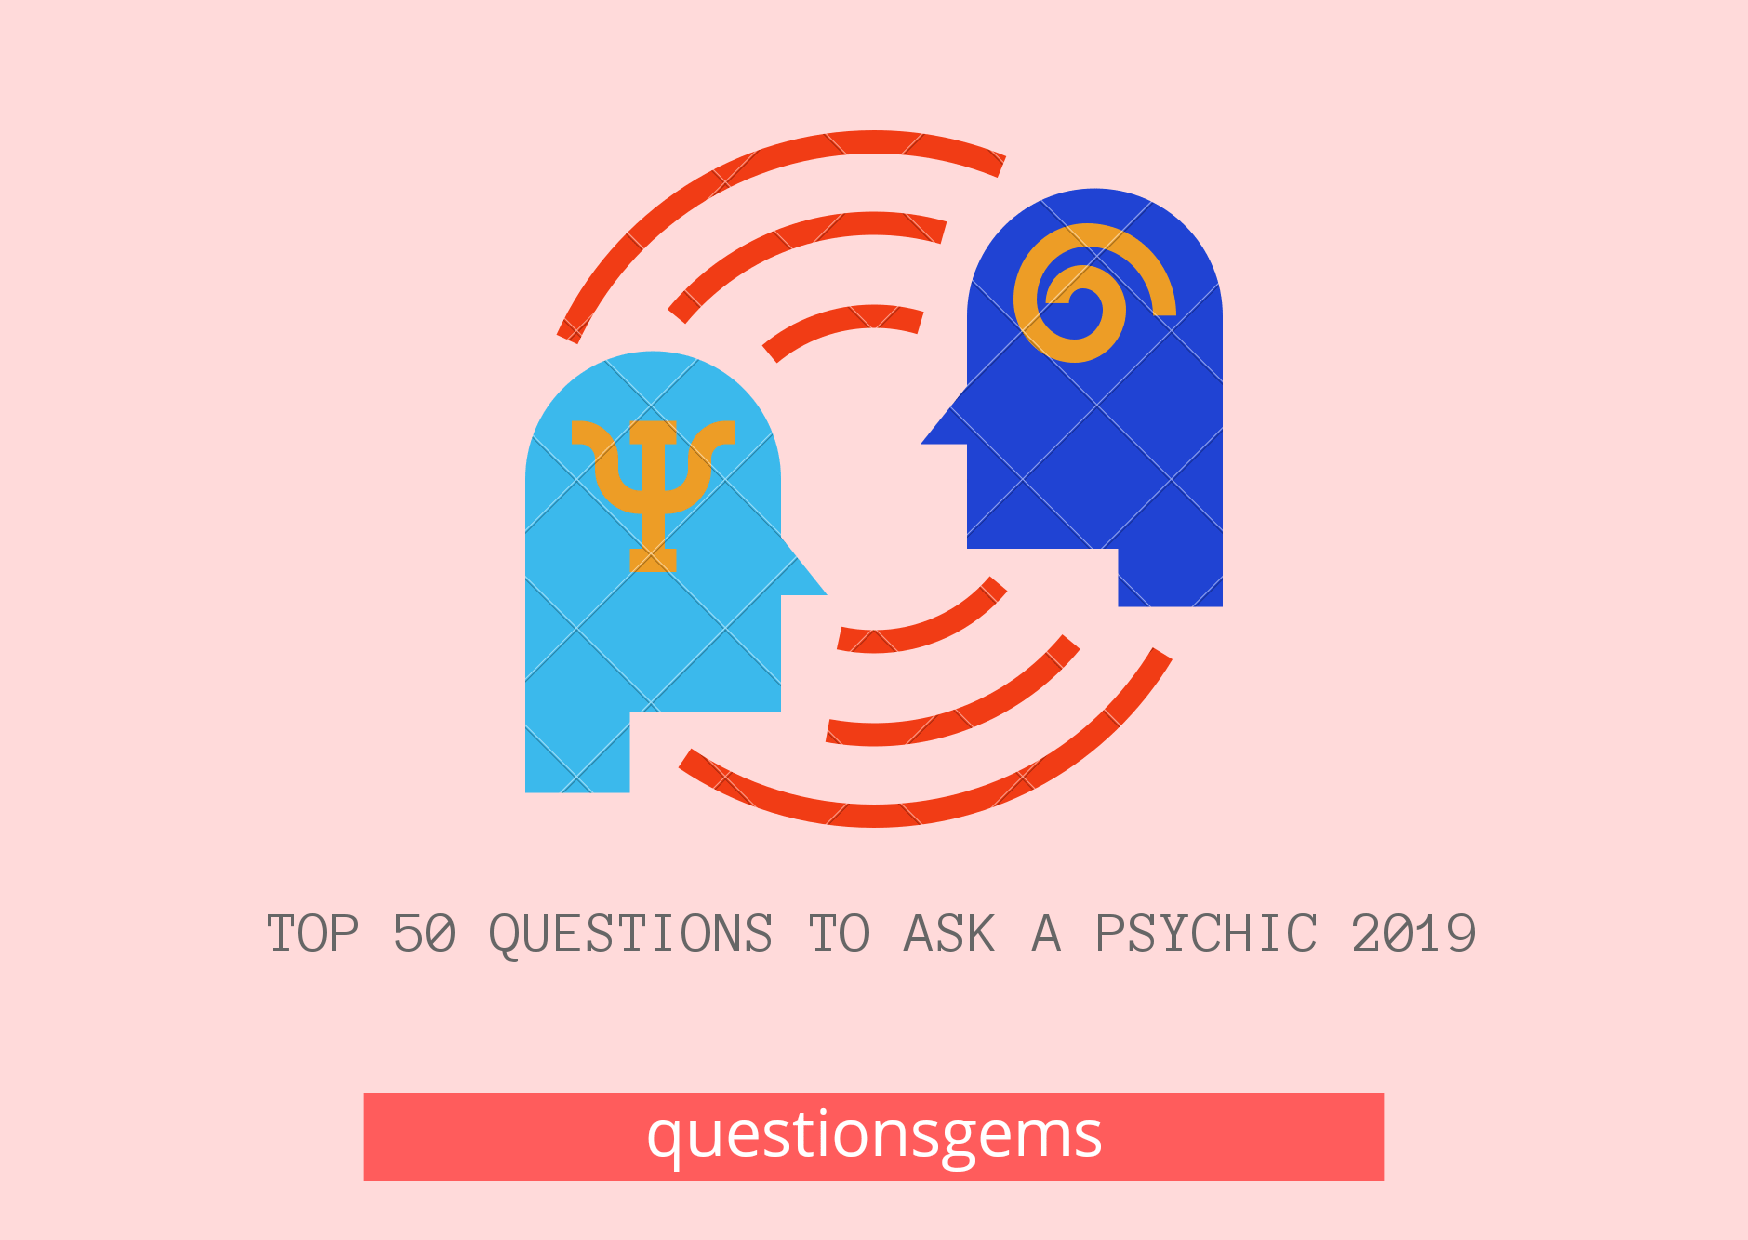 Questions To Ask A Psychic 2019